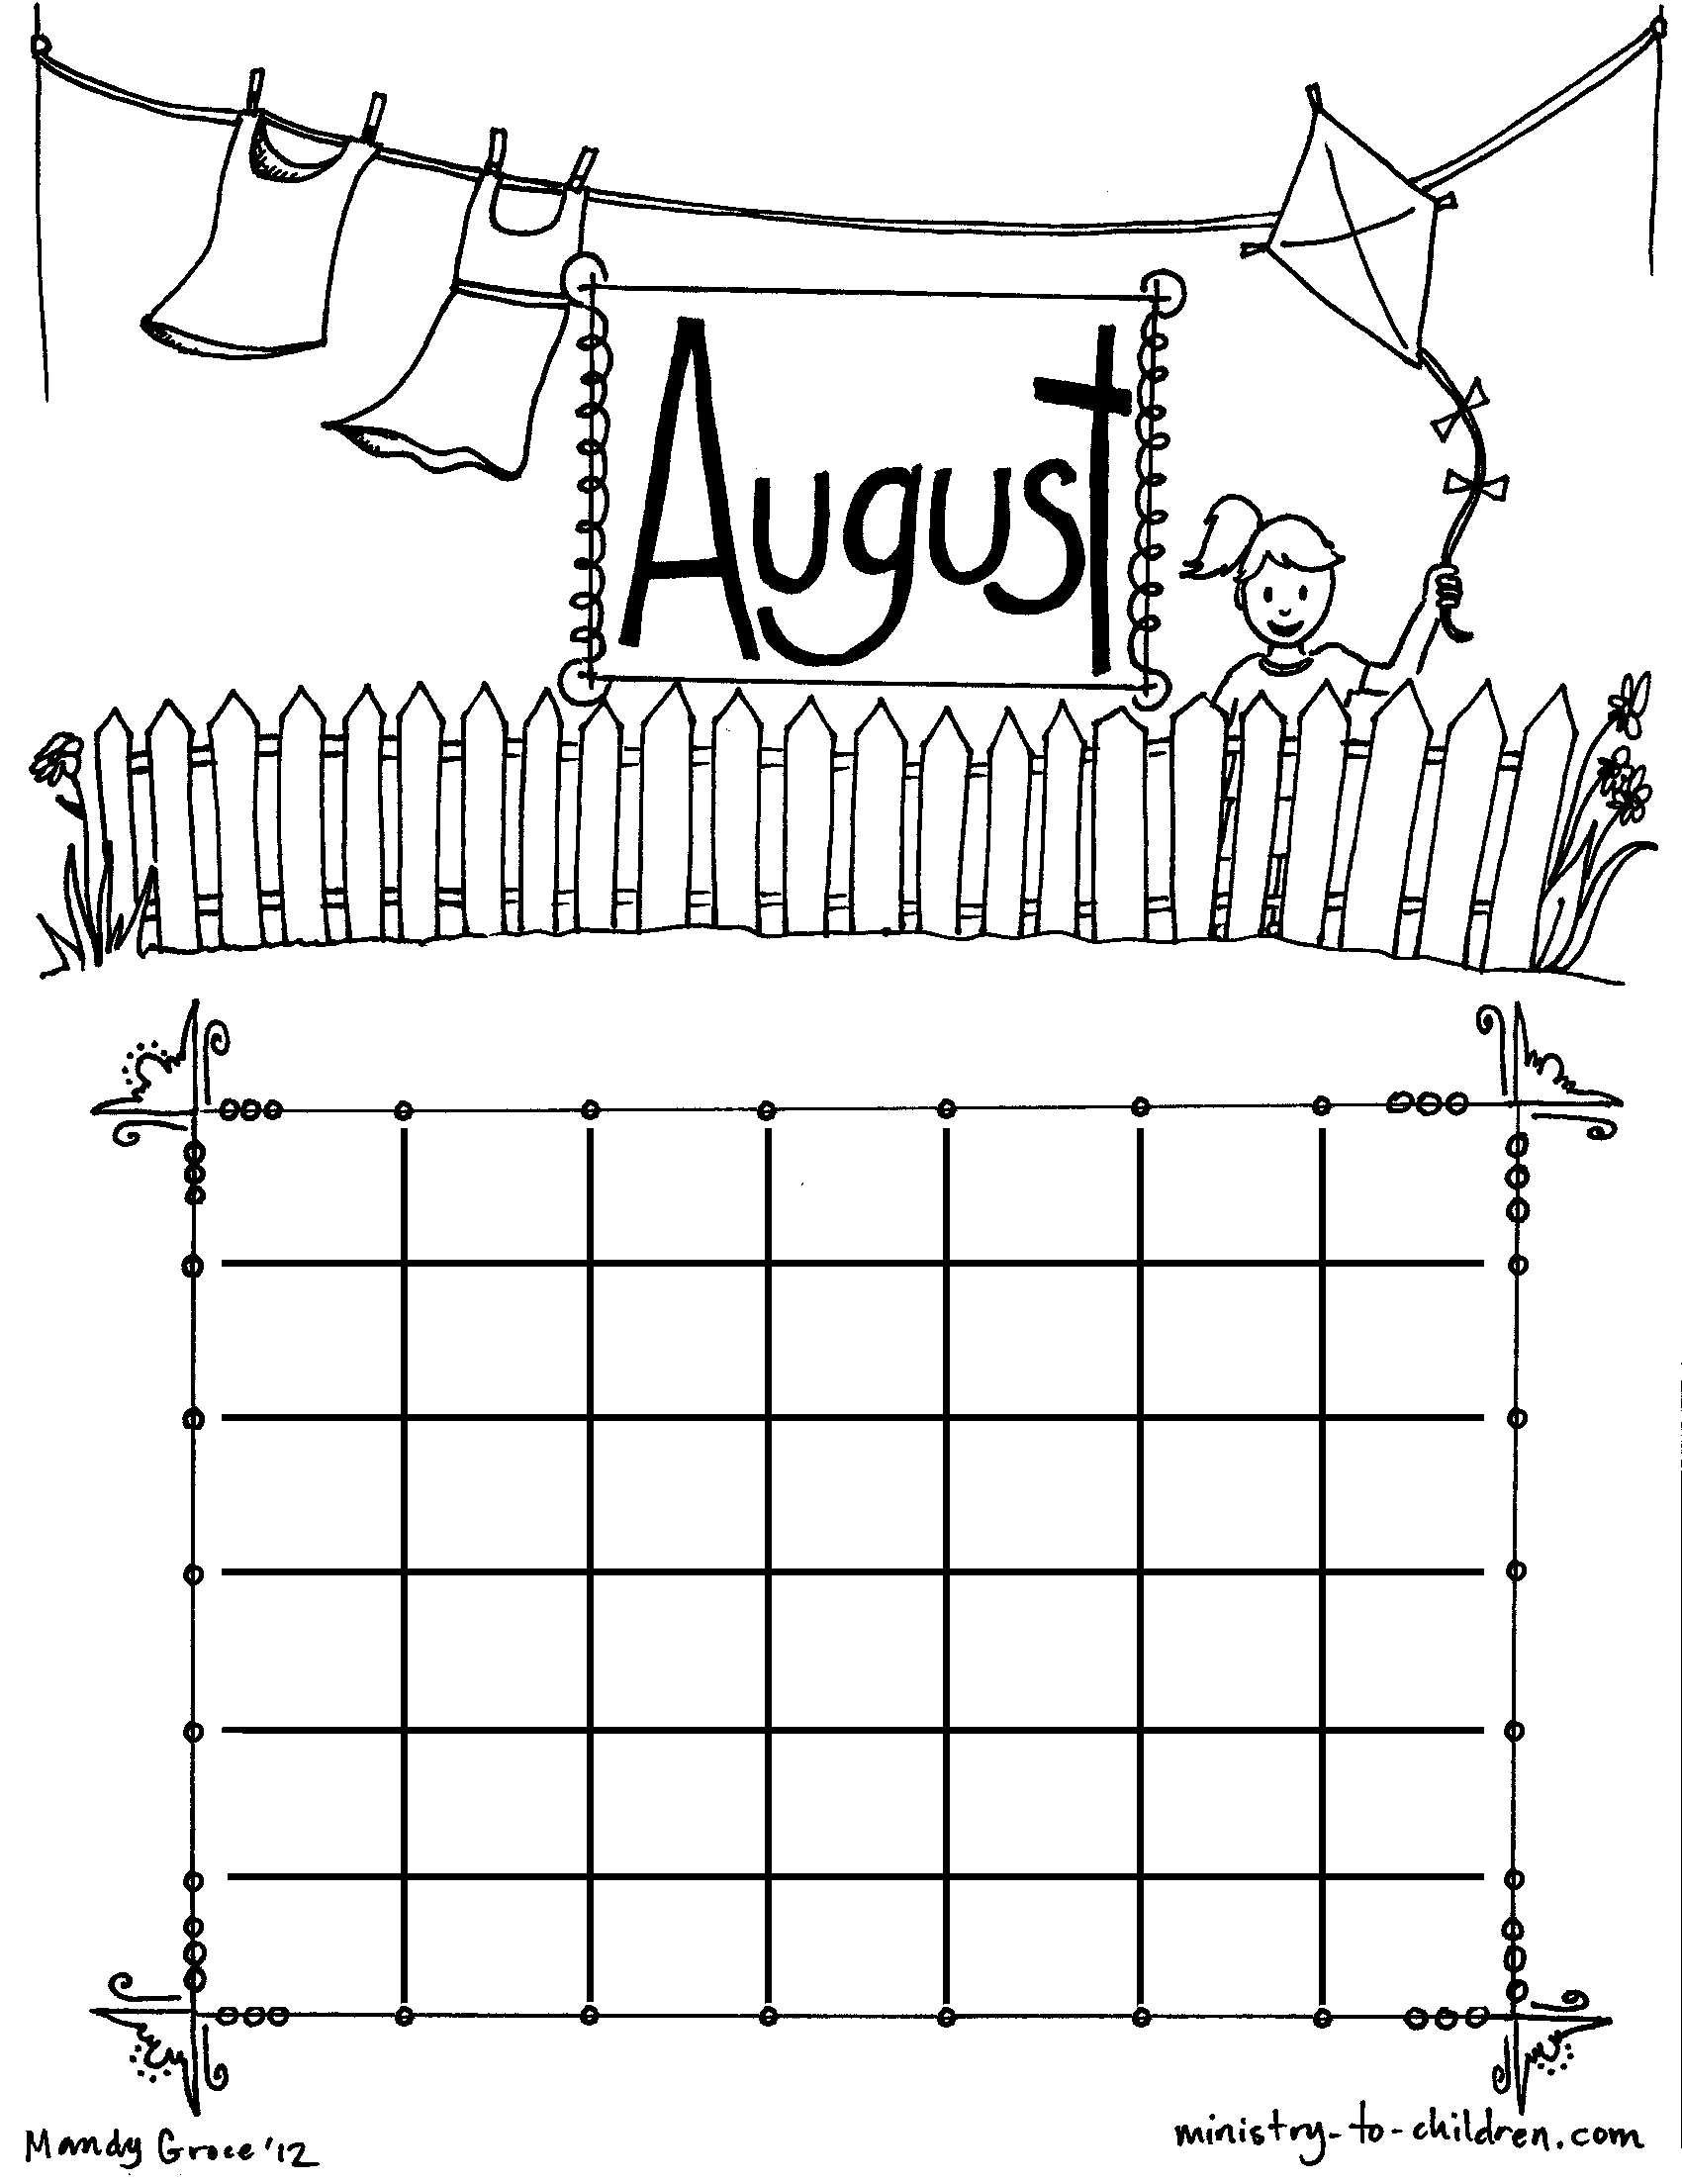 August coloring pages to download